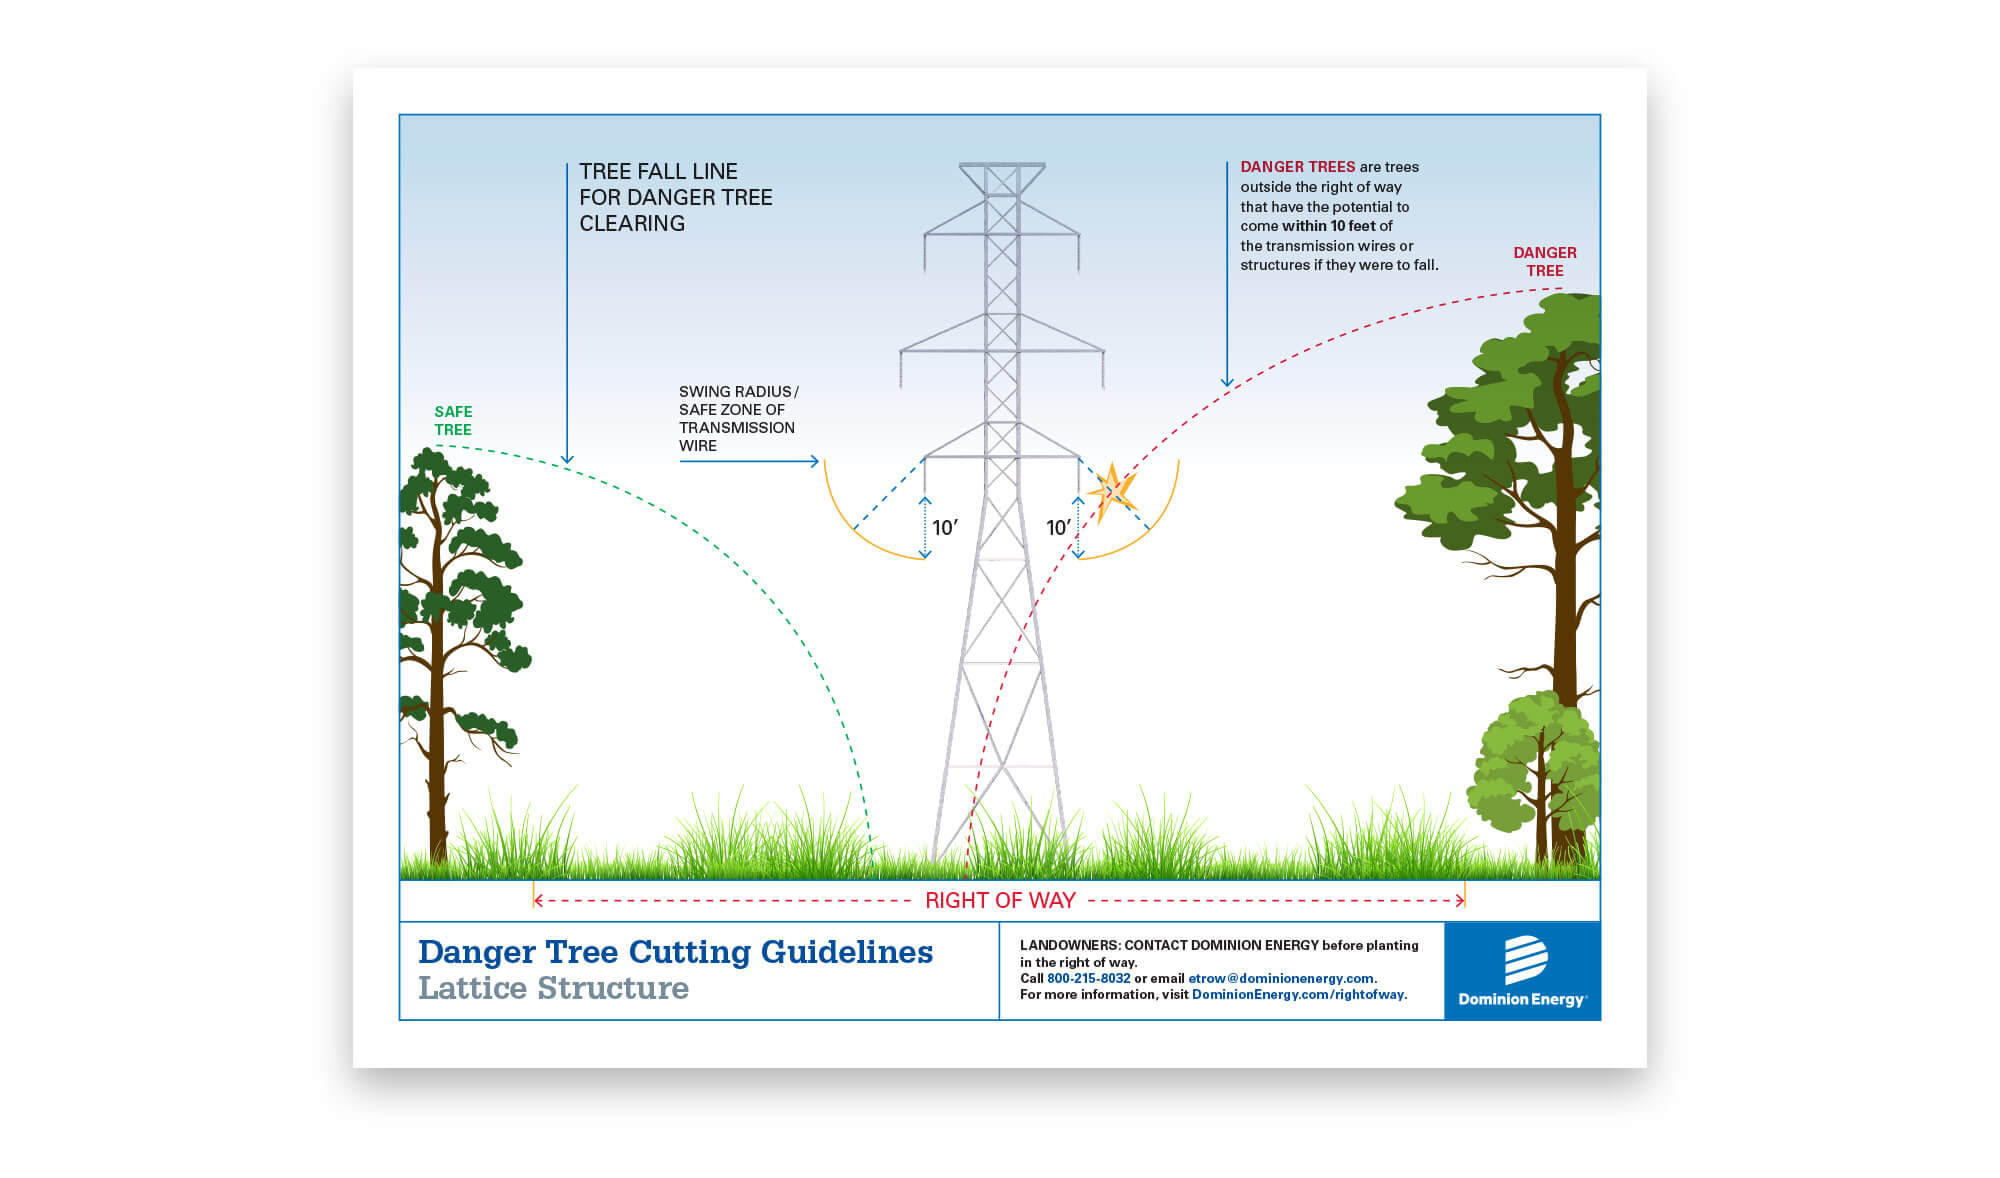 Danger Tree Cutting Guideline: Lattice